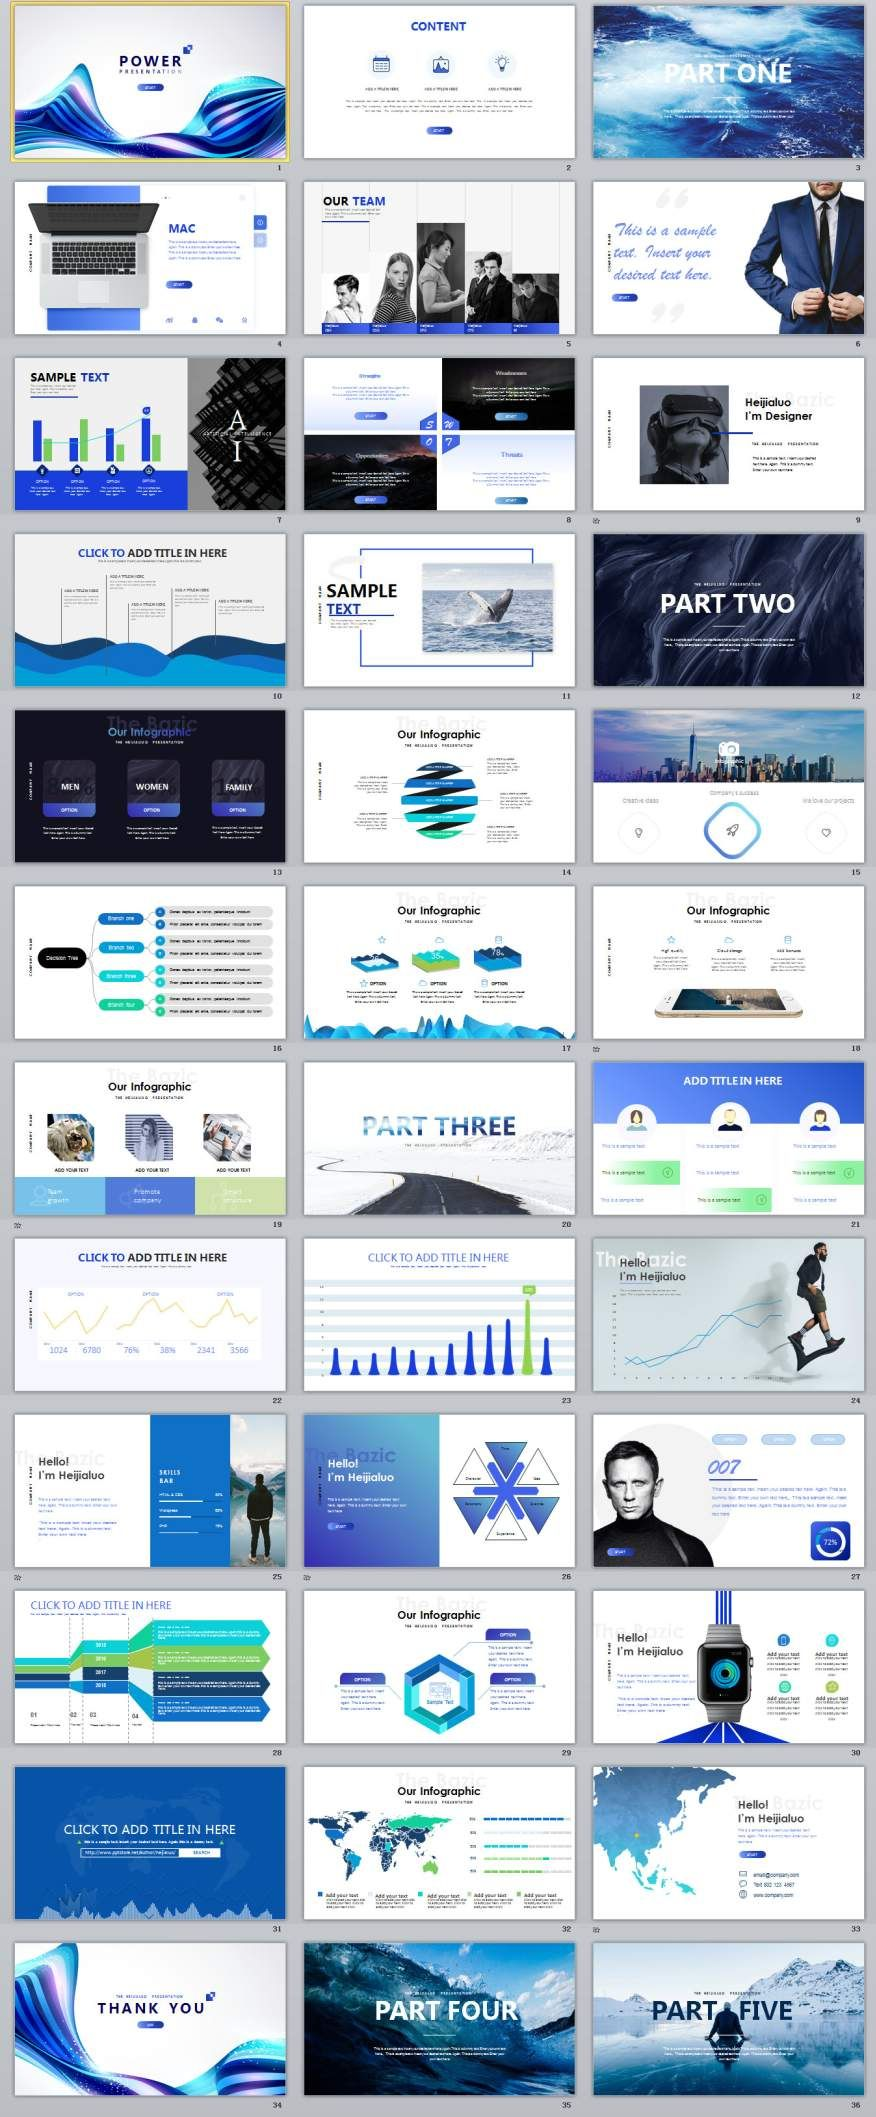 Tech Mobile Powerpoint Presentations Template   Business